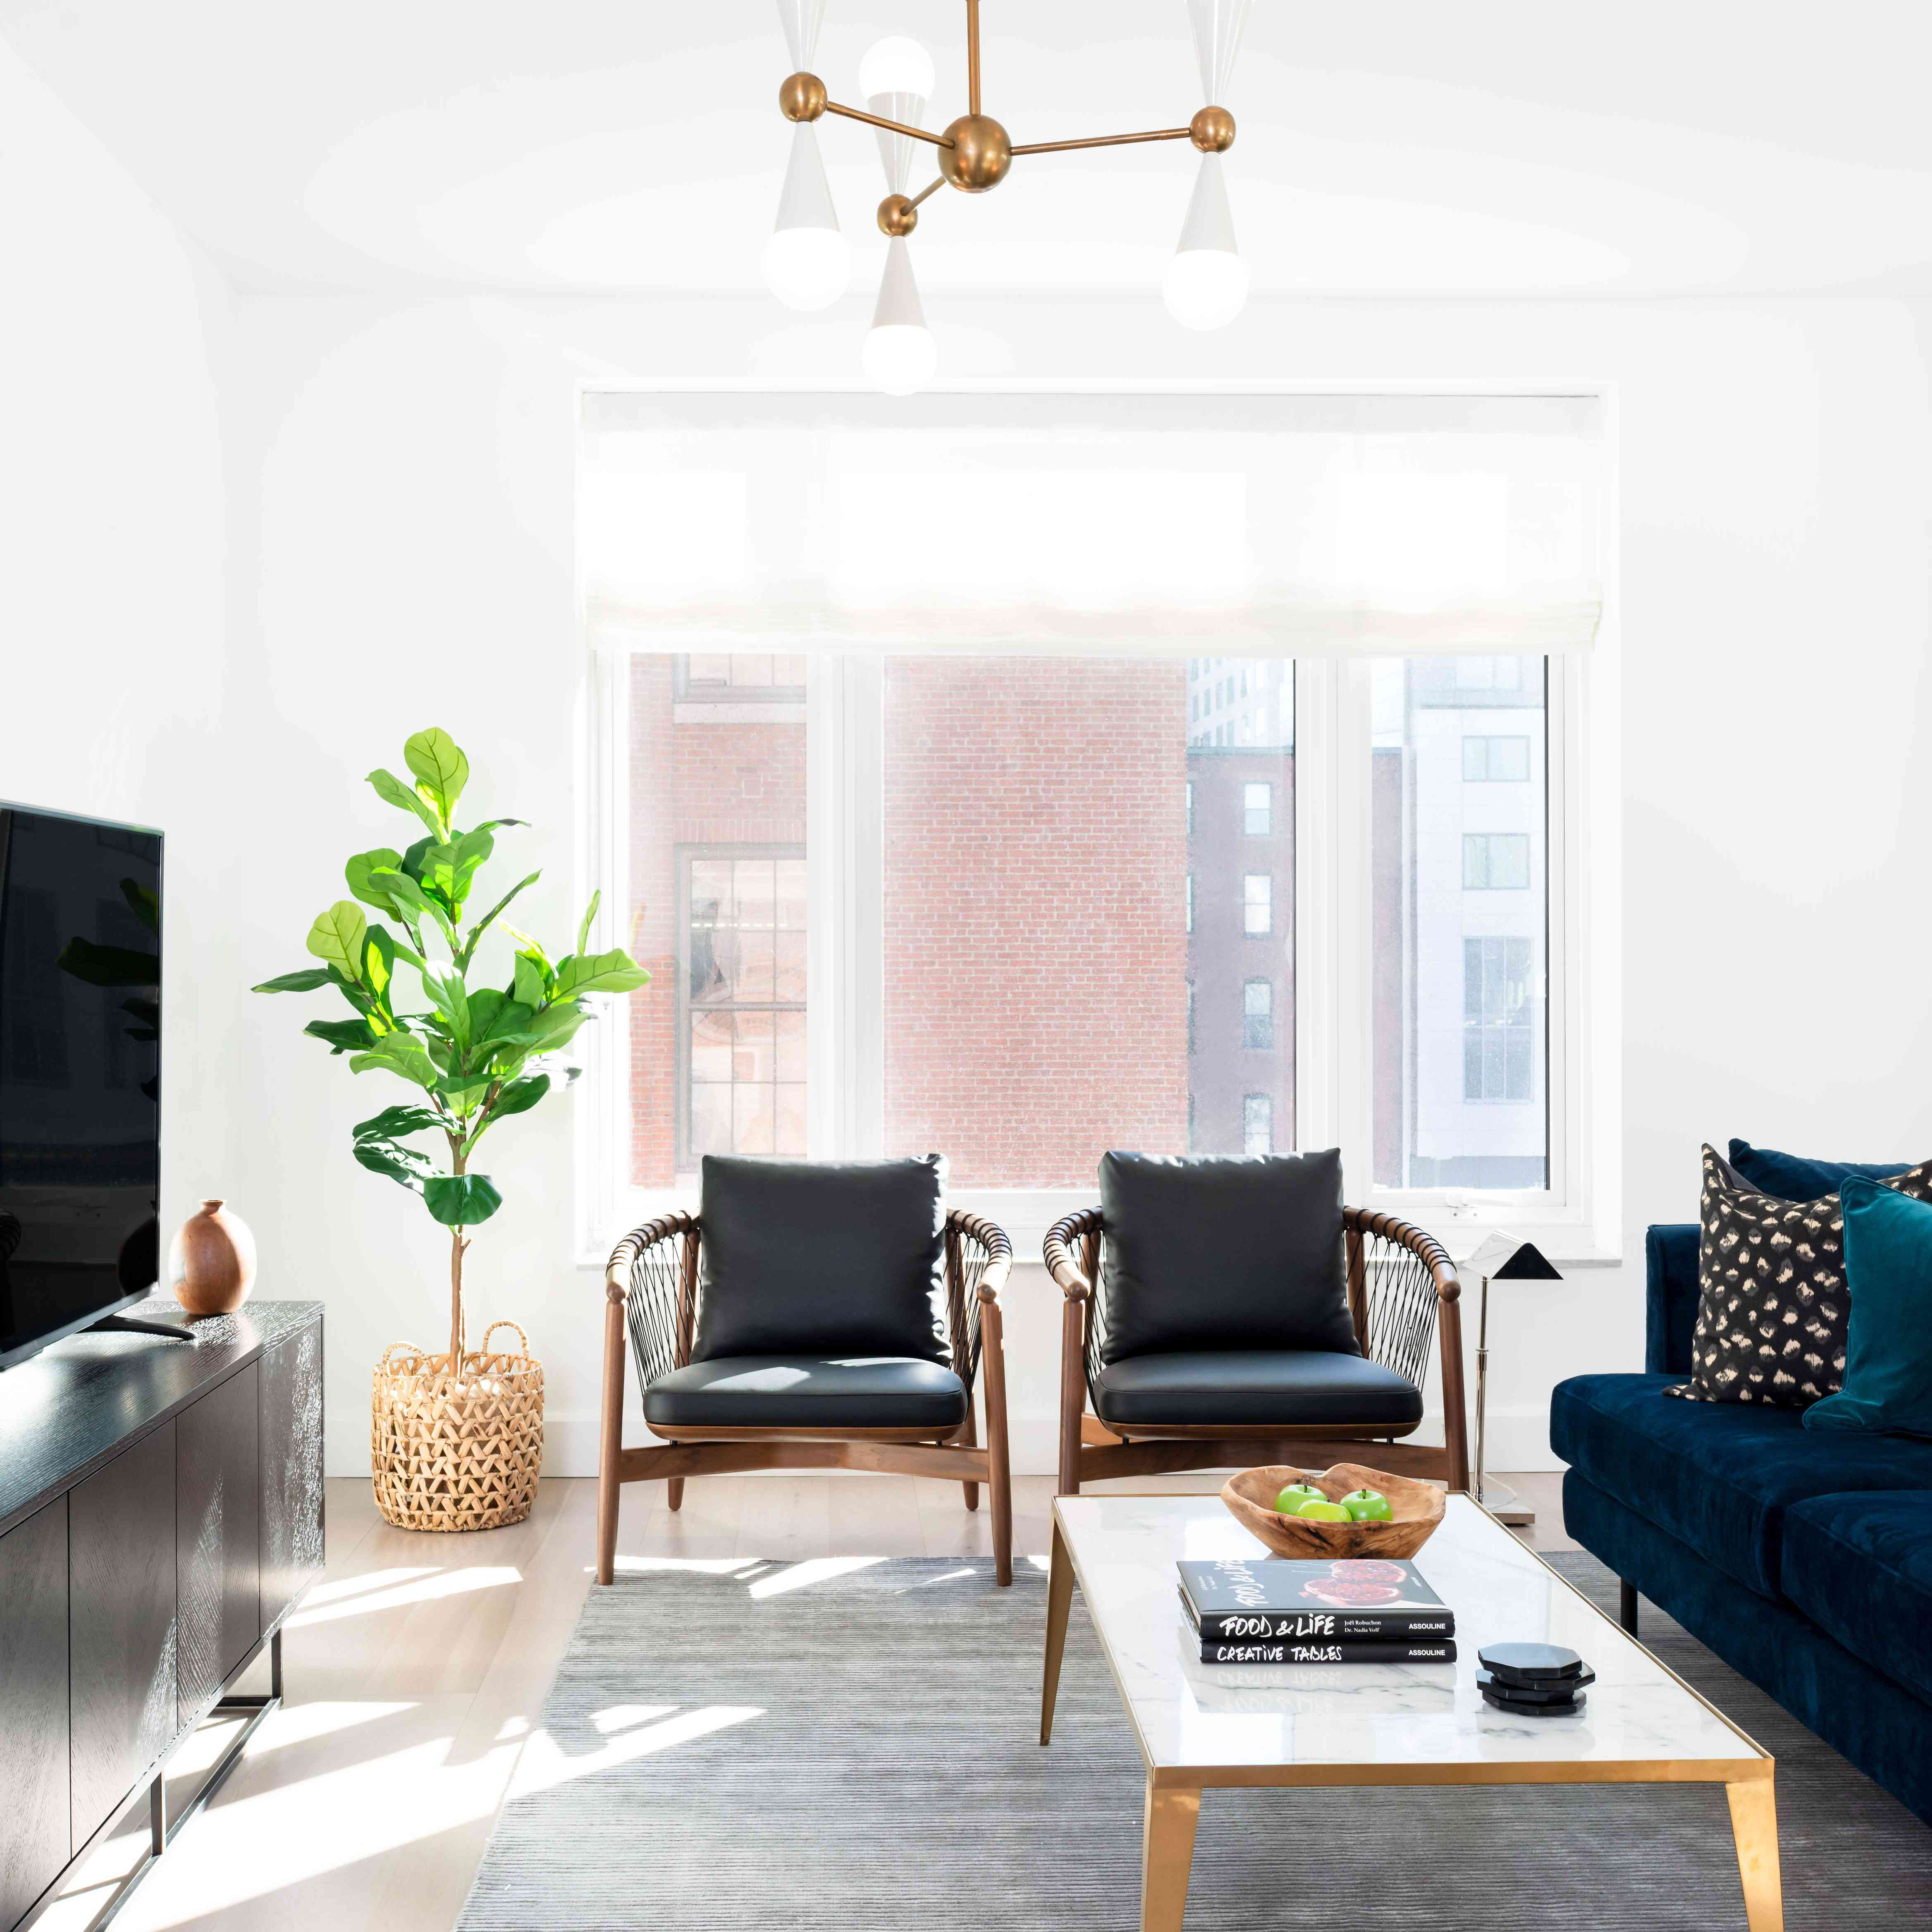 best living room ideas- living room design with dark couches